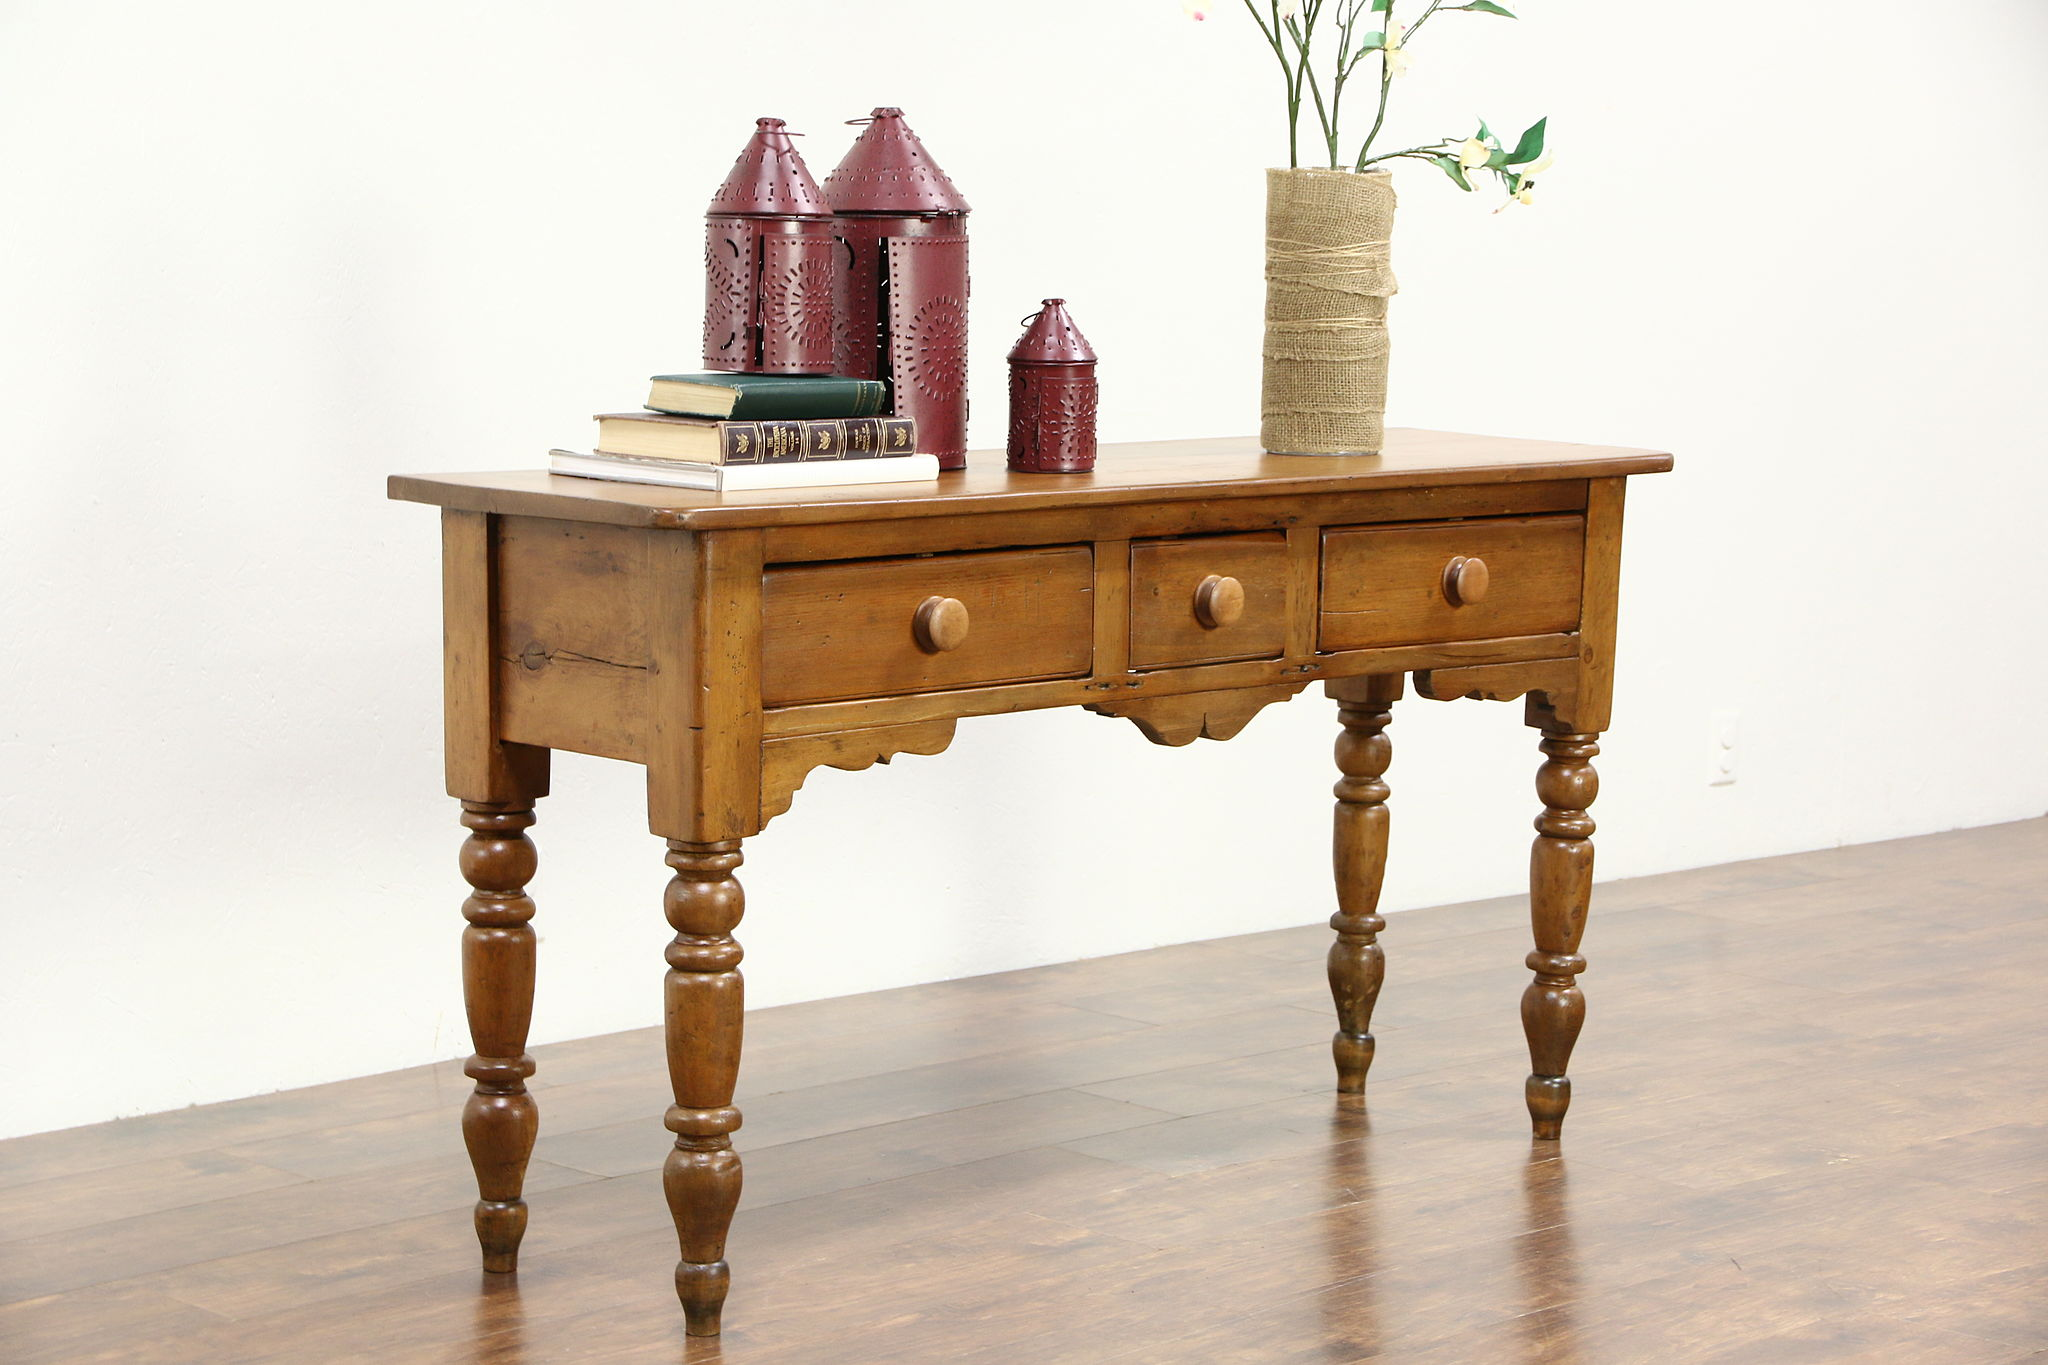 Hall Console country pine 1860's antique english sofa table or hall console